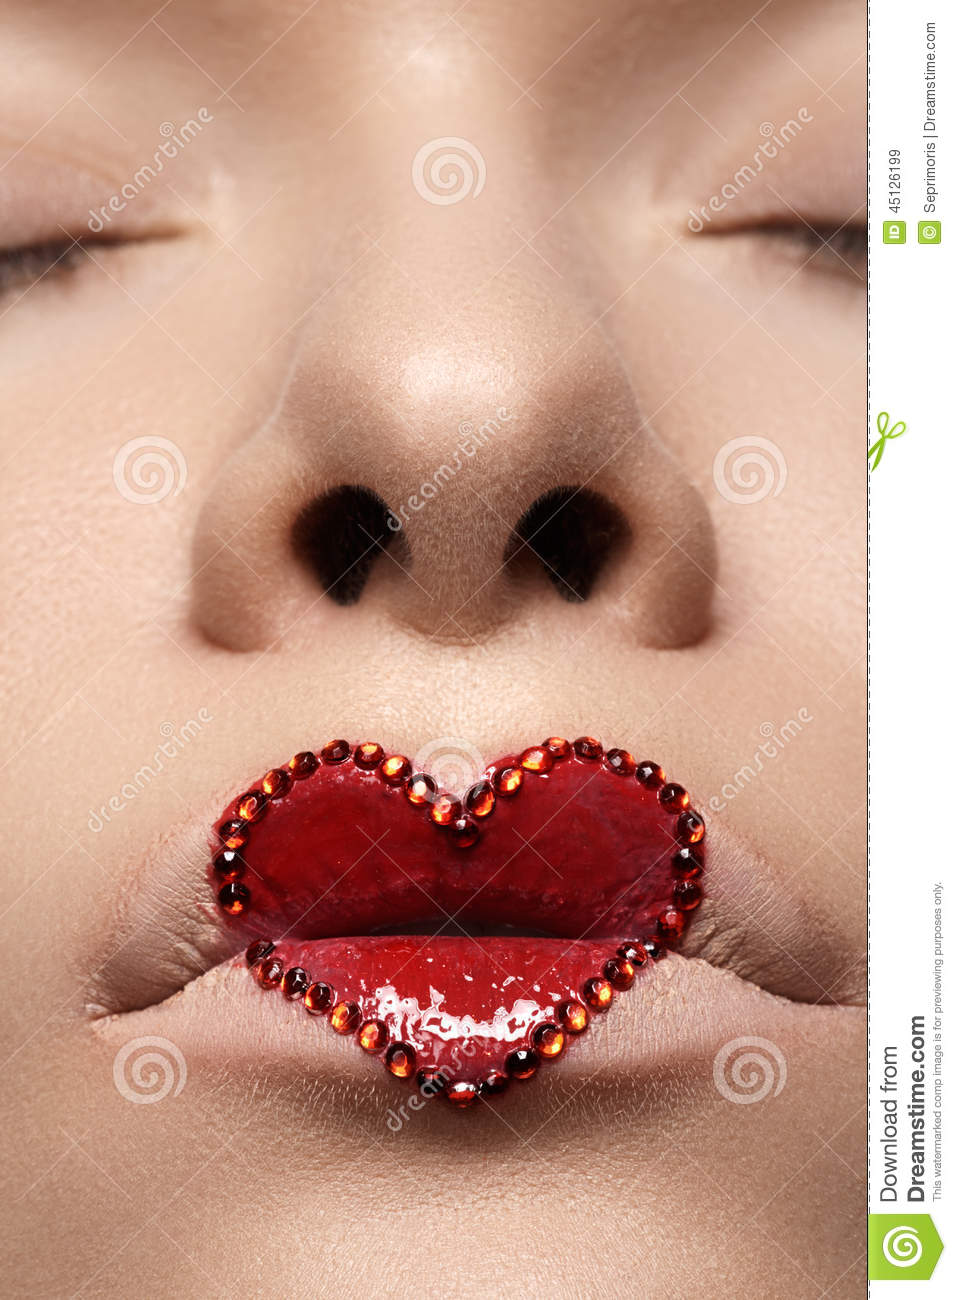 Closeup Lips With Red Heart Make-up U0026 Rhinestones. Valentines Day Style Stock Photo - Image ...